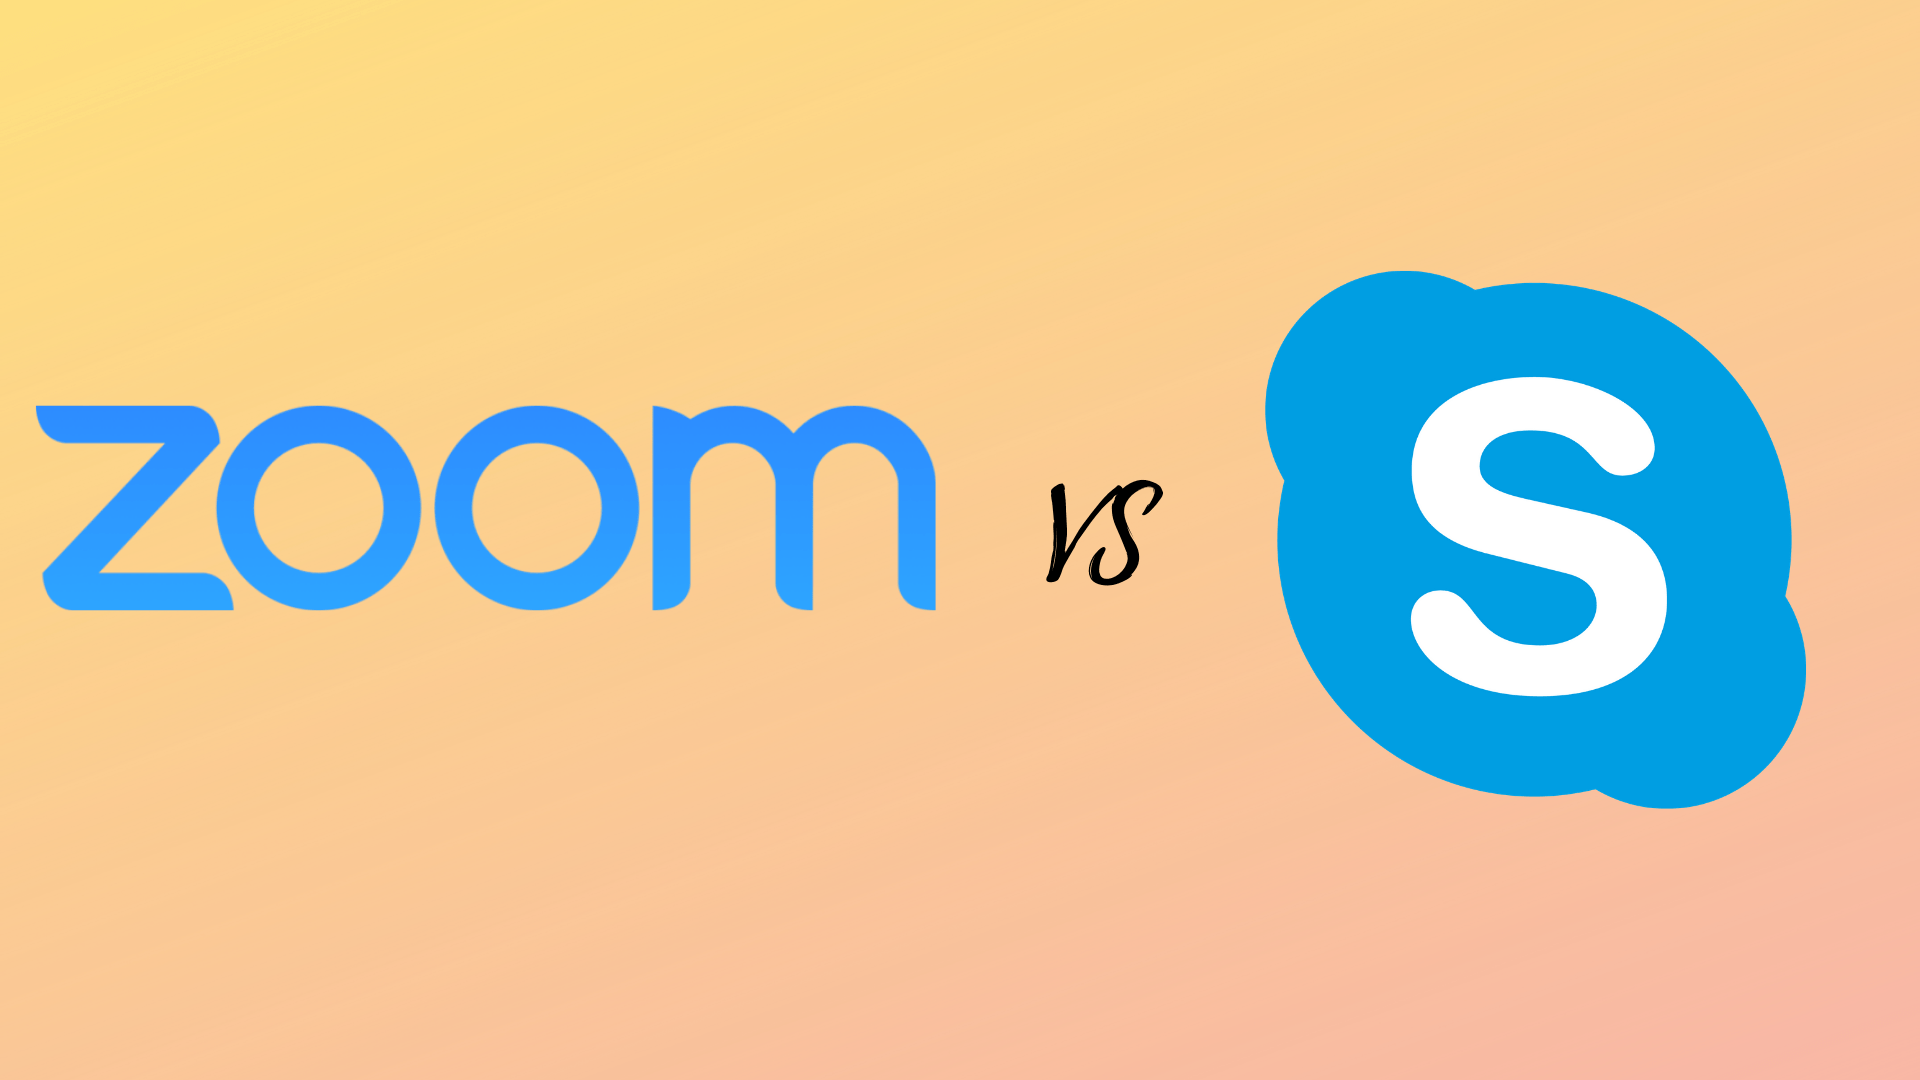 Skype vs Zoom: Which App Is Better Suited To Working From Home?